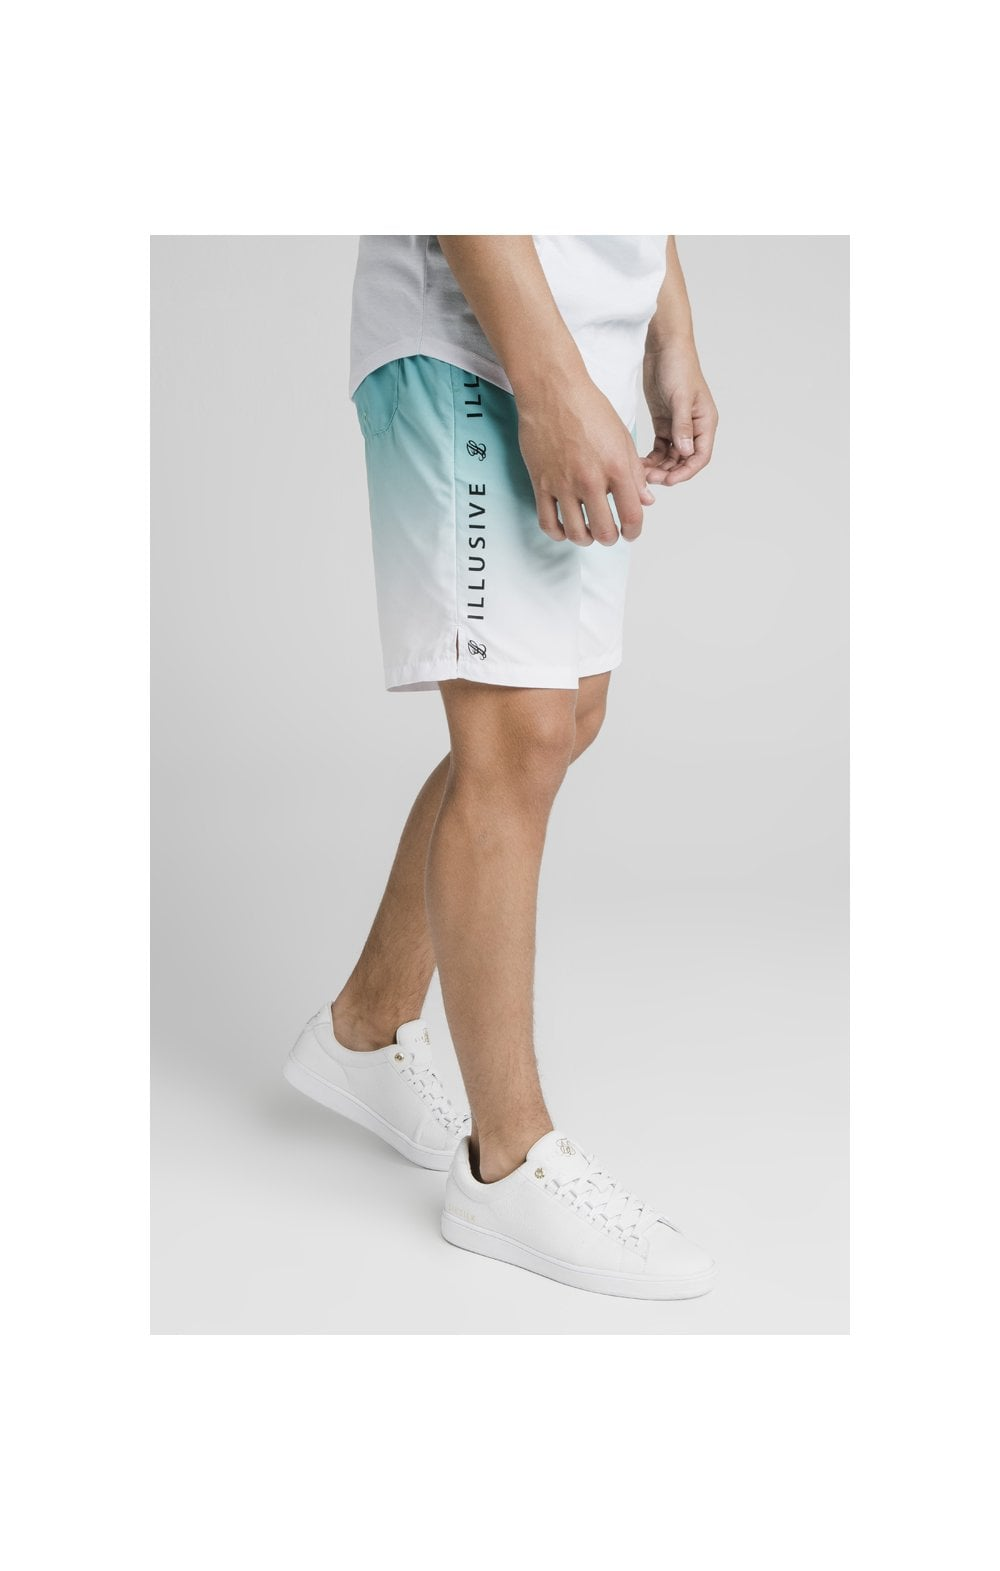 Load image into Gallery viewer, Illusive London Fade Swim Shorts - Teal & White (2)